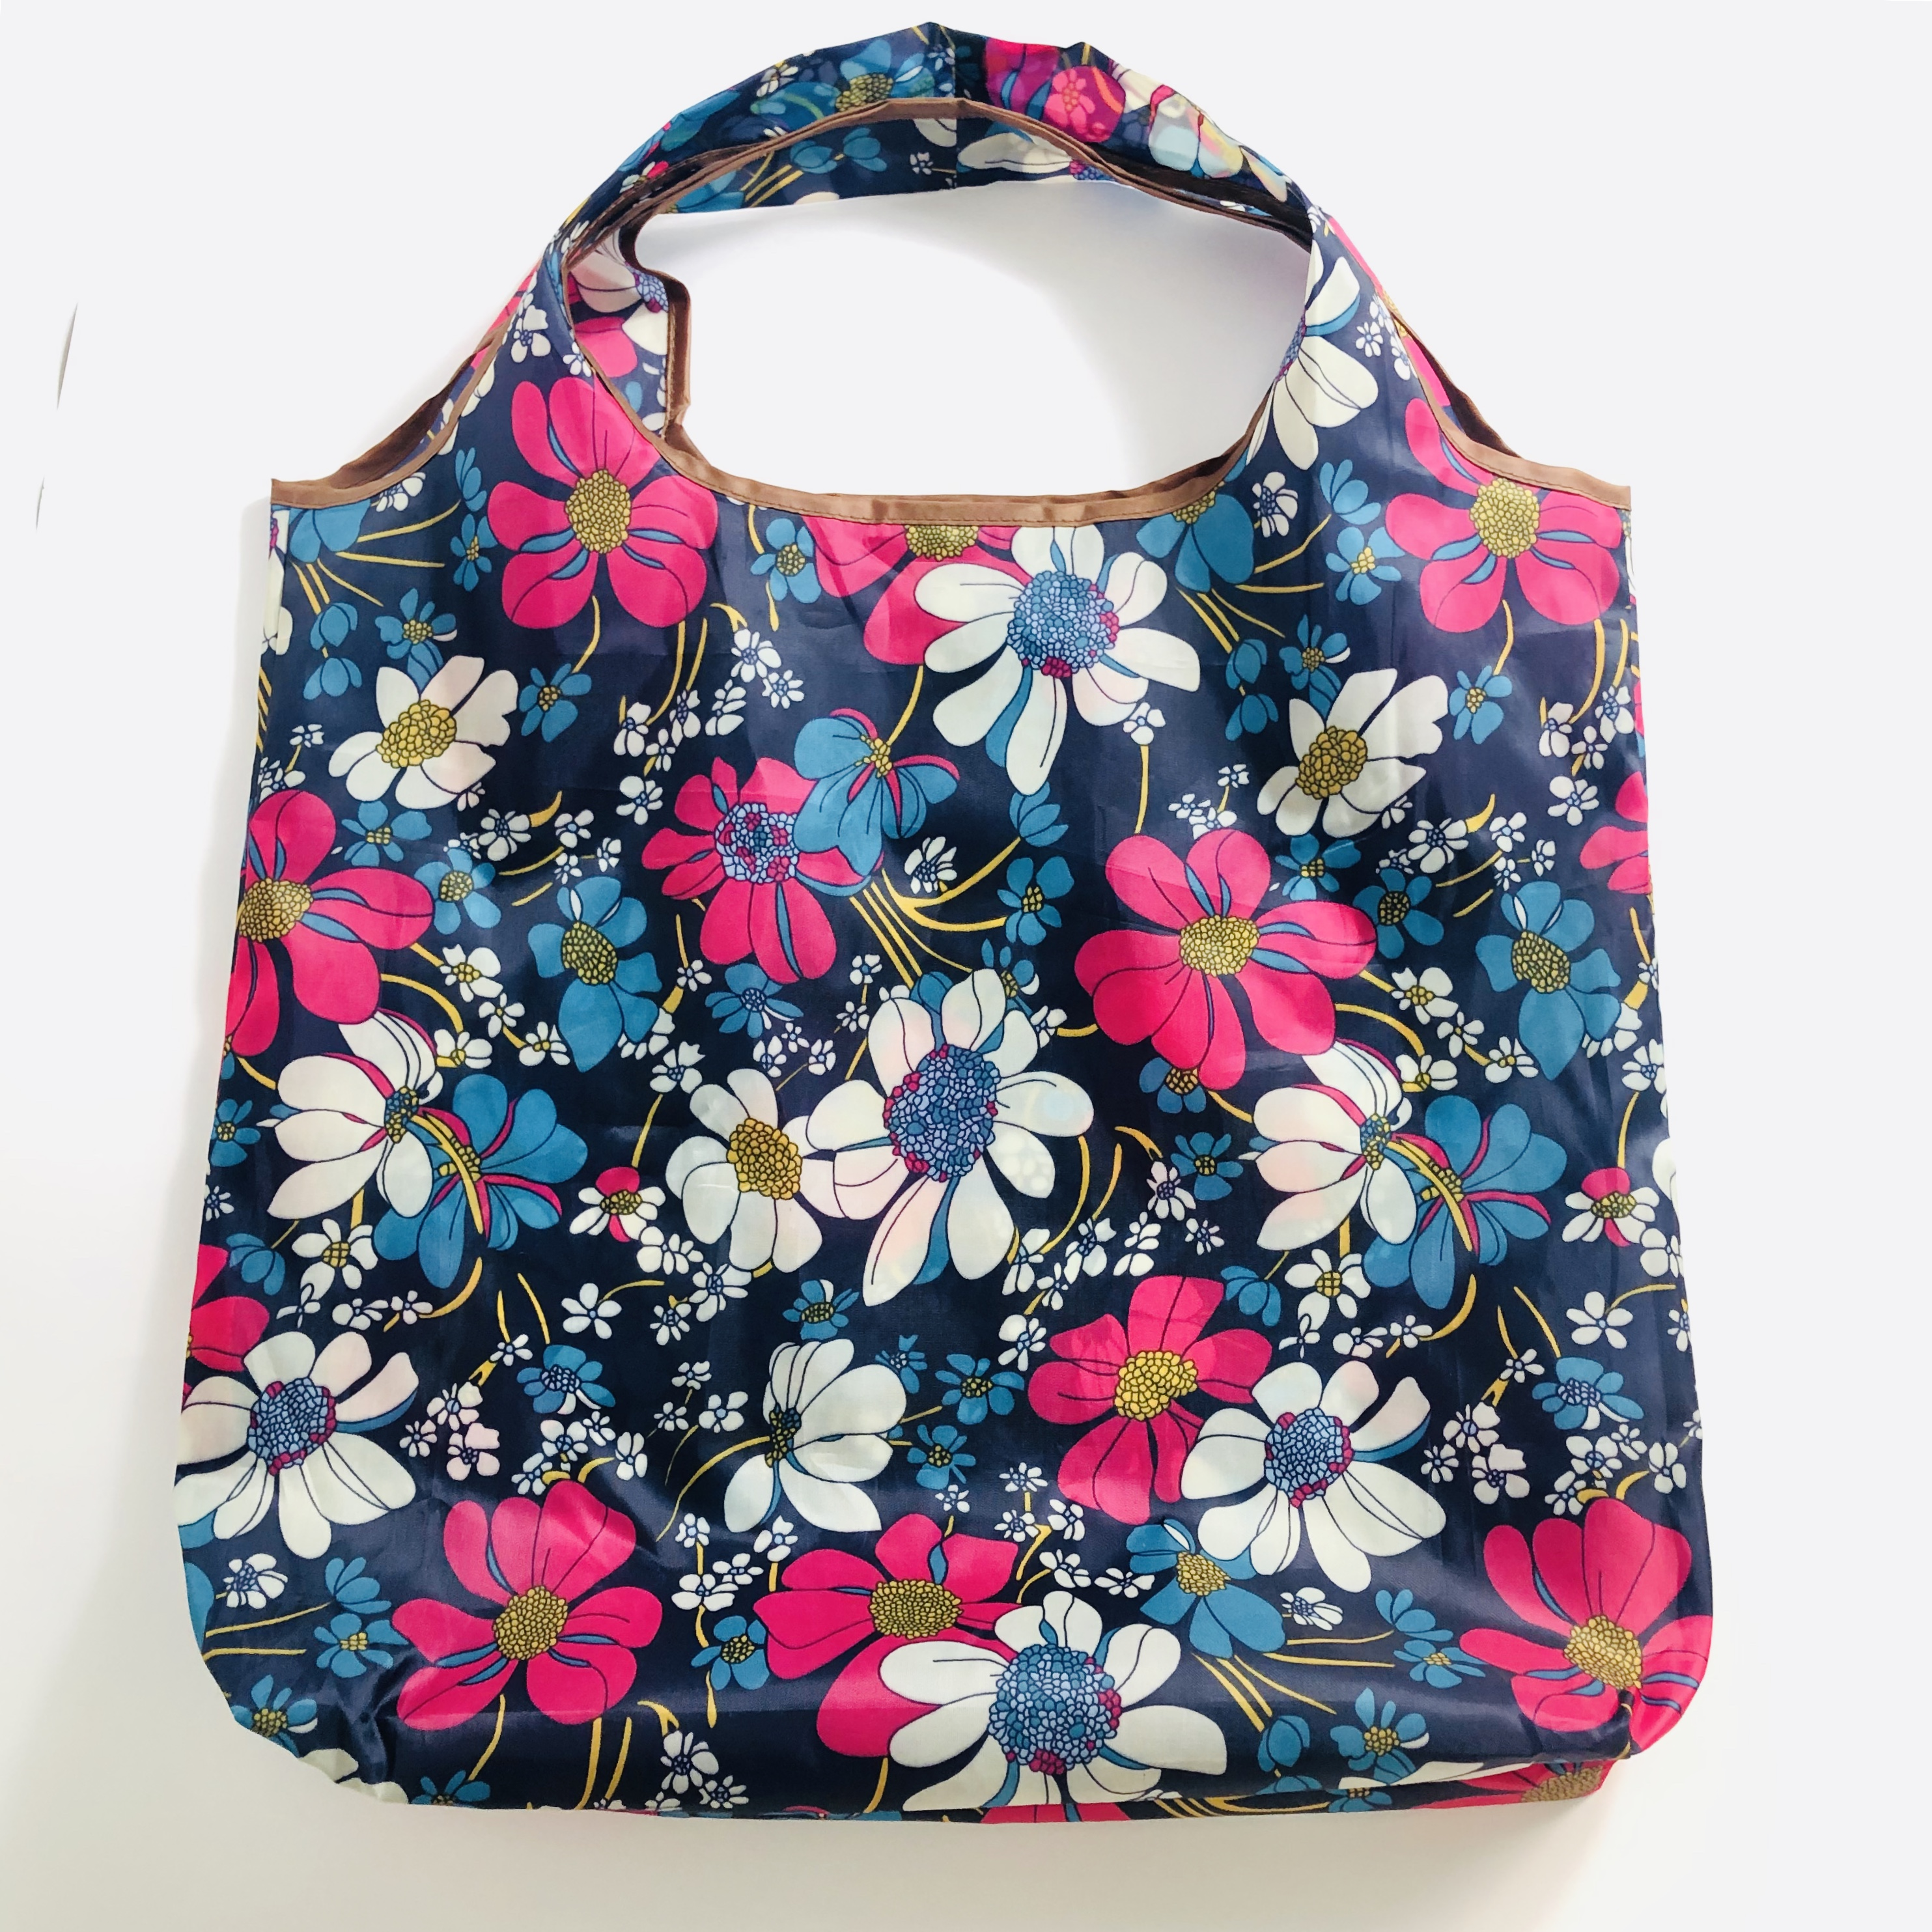 SHoping Bag With Color Eco Reusable Shopping Tote Bag Cartoon Floral Fruit Vegetable Grocery